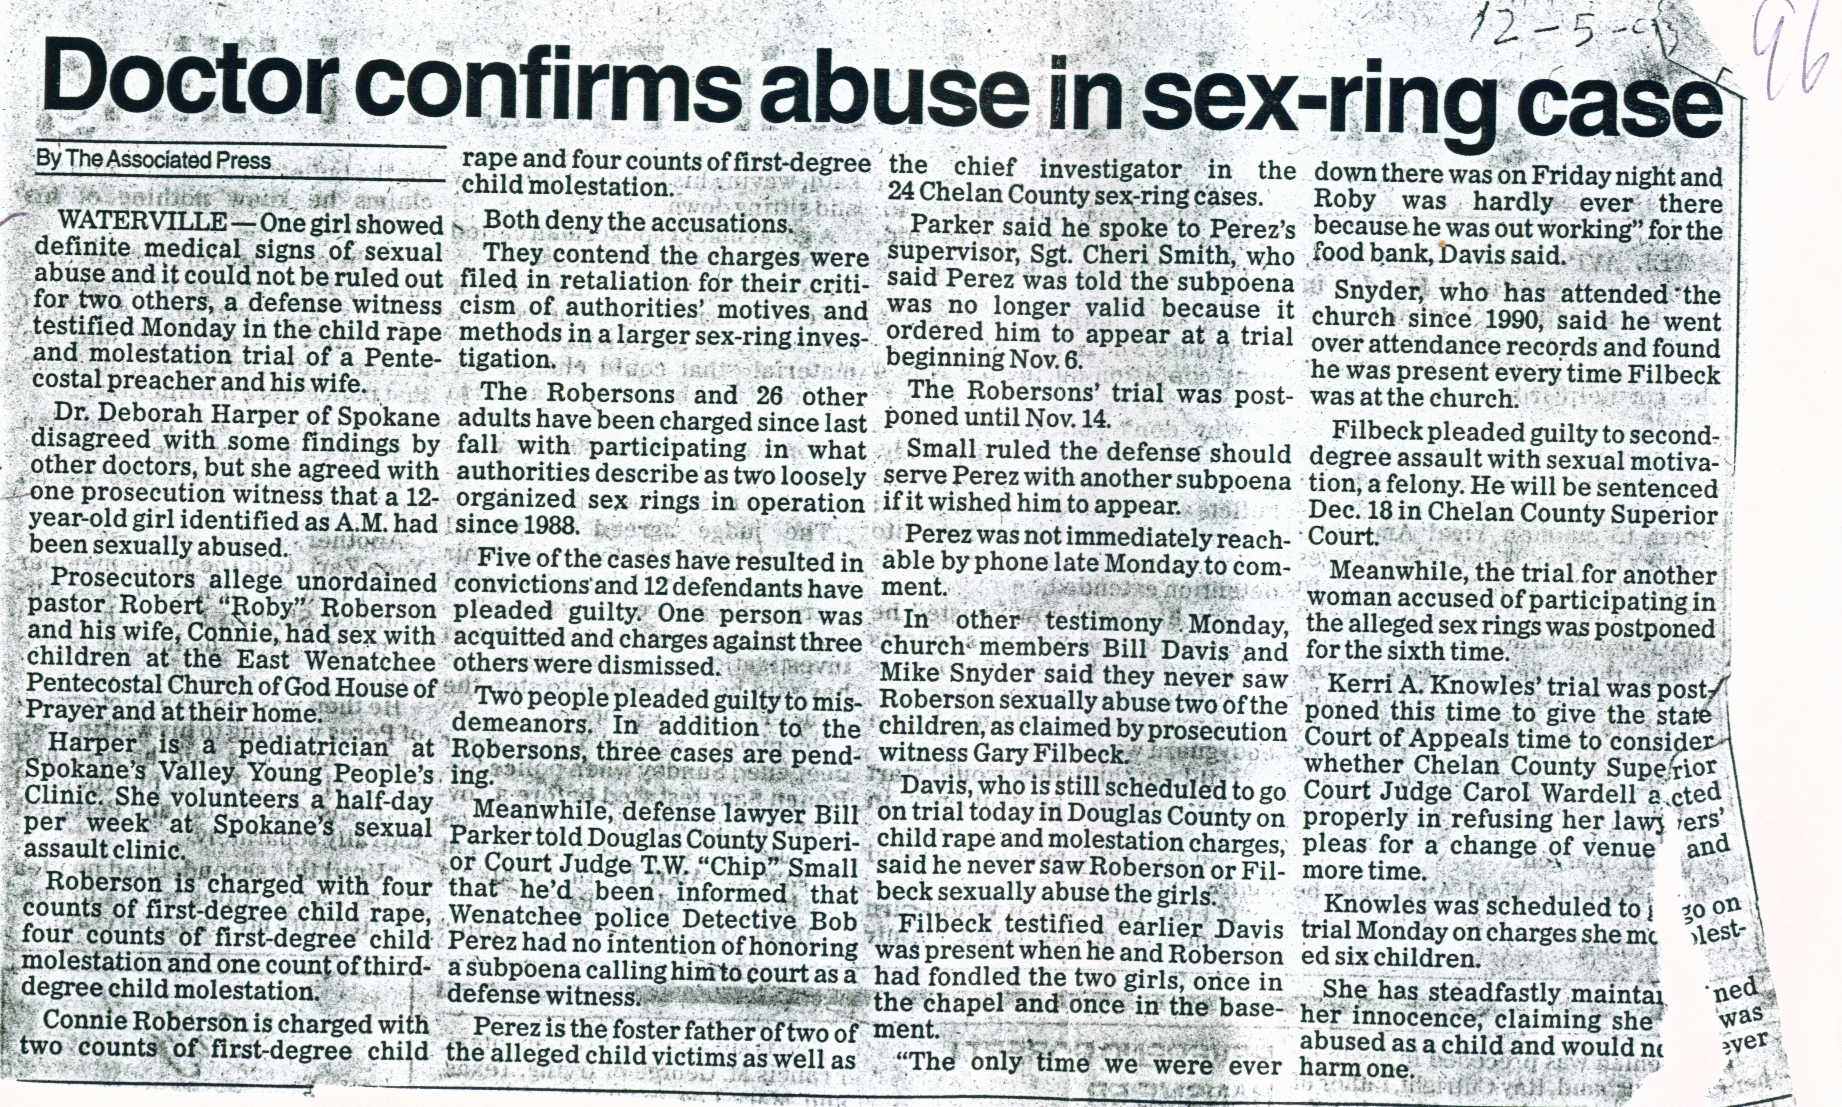 Doctor confirms abuse in sex-ring case